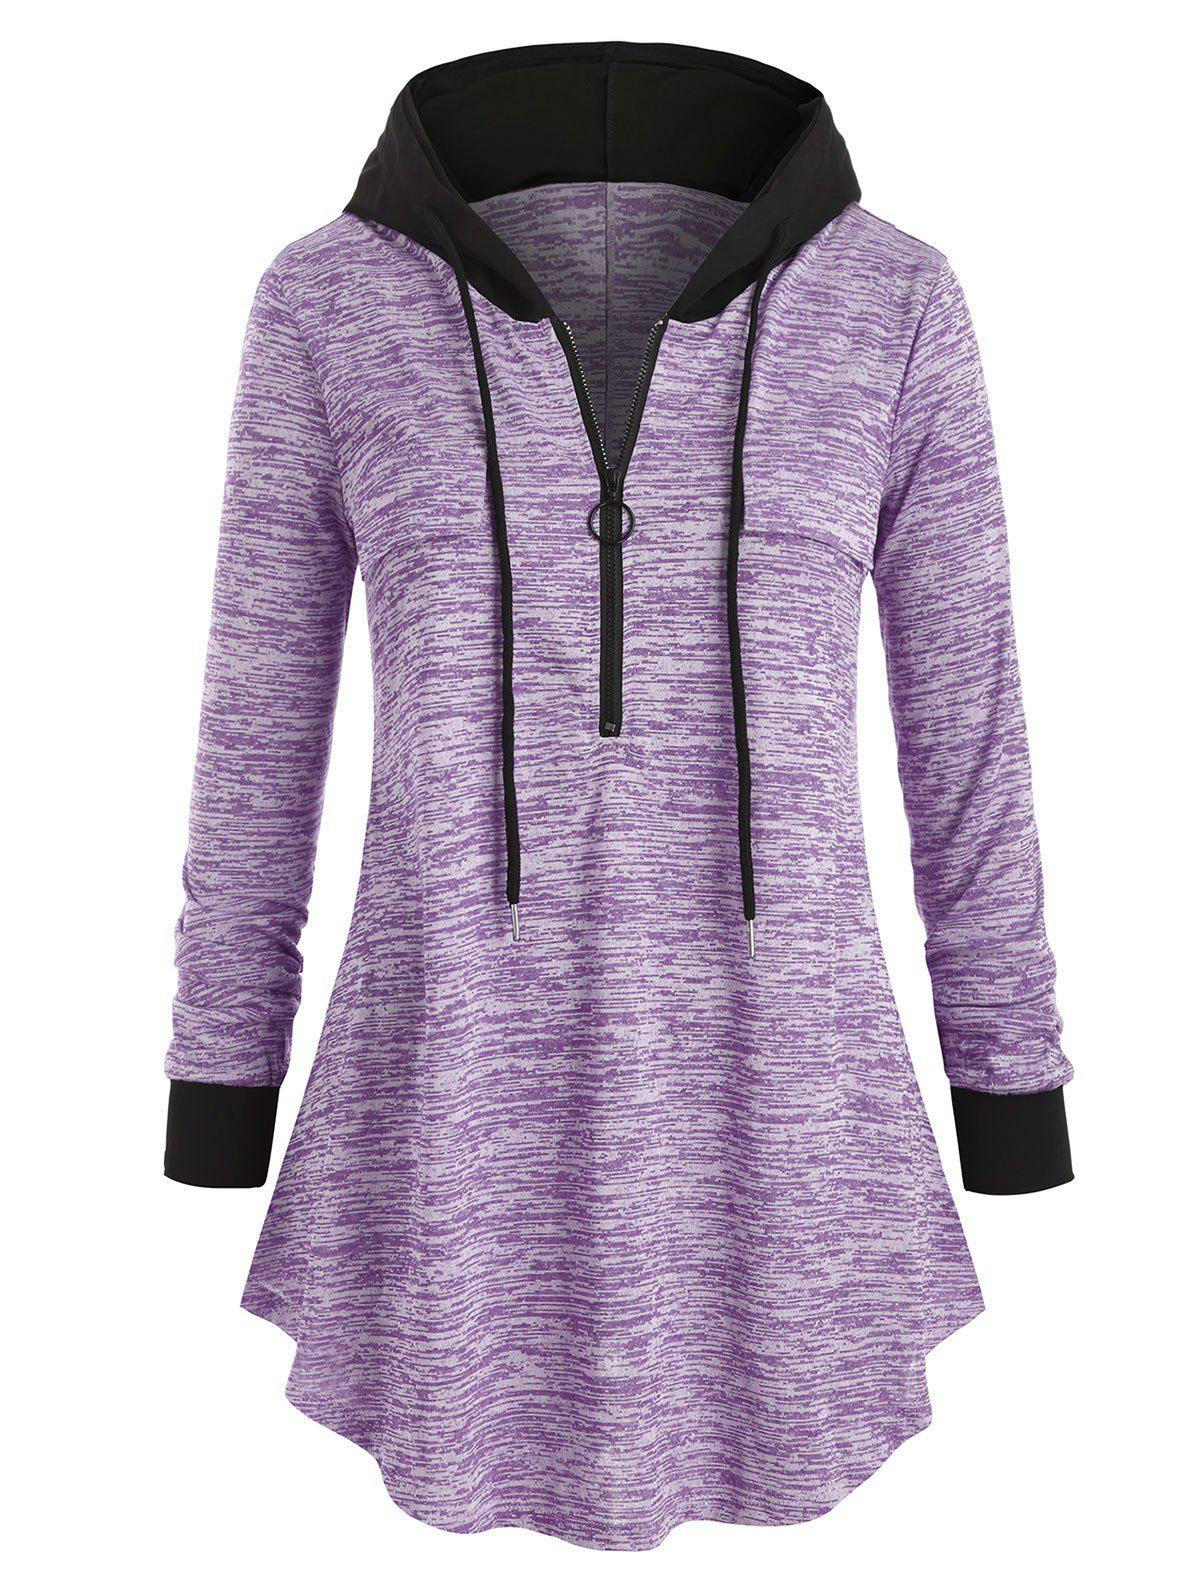 Space Dye Long Sleeve Plus Size Hooded Tunic Top - MAUVE 4X